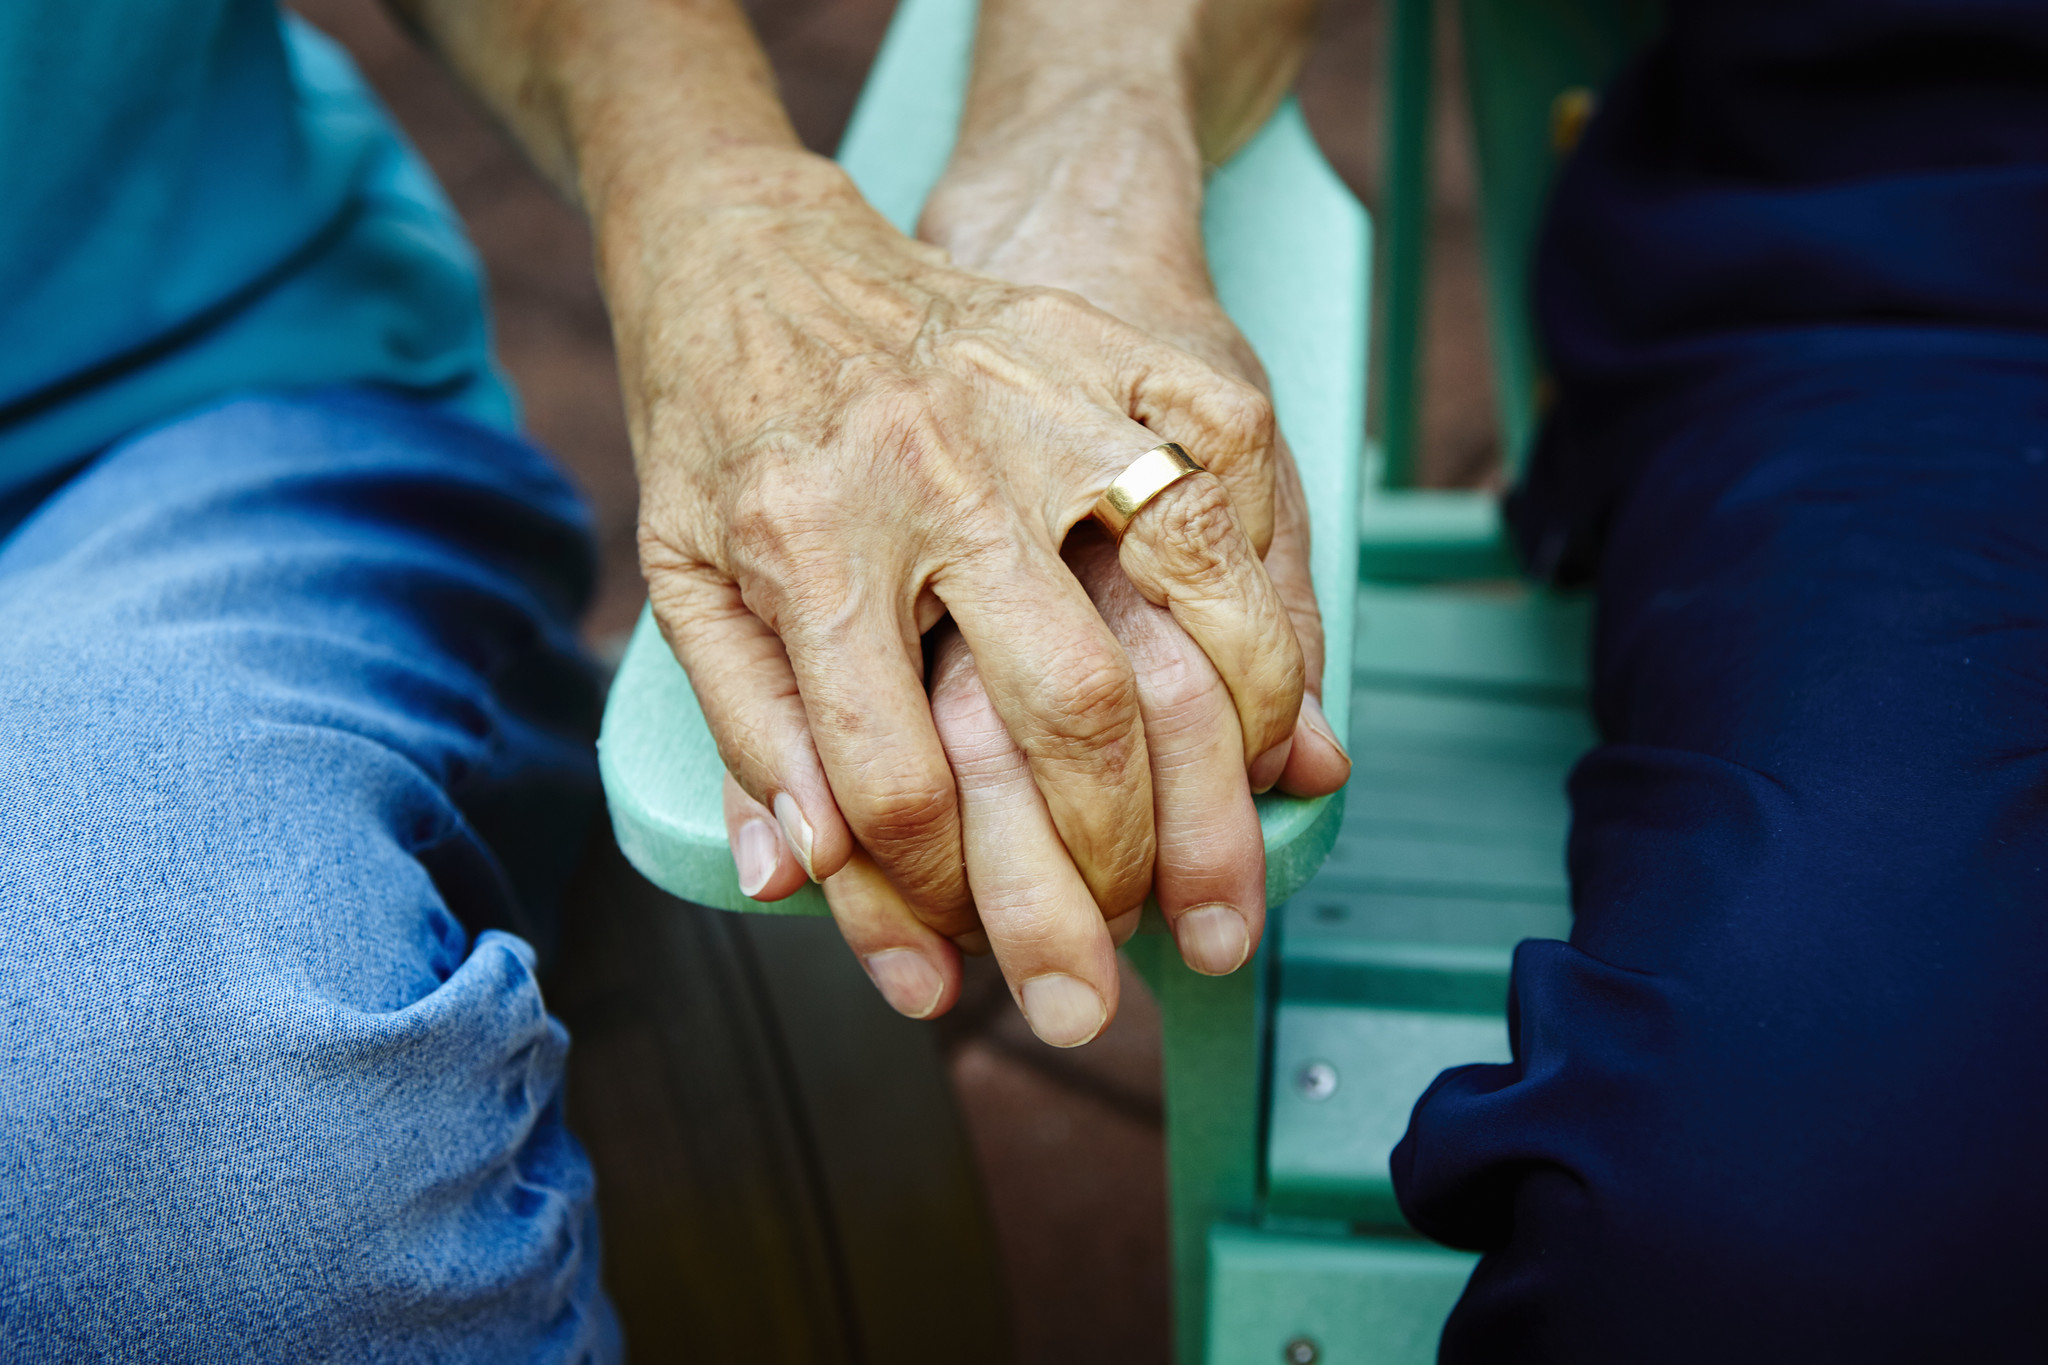 Husband with Alzheimer's forgot he was married to his wife of 38 years. He proposed, and they married again.